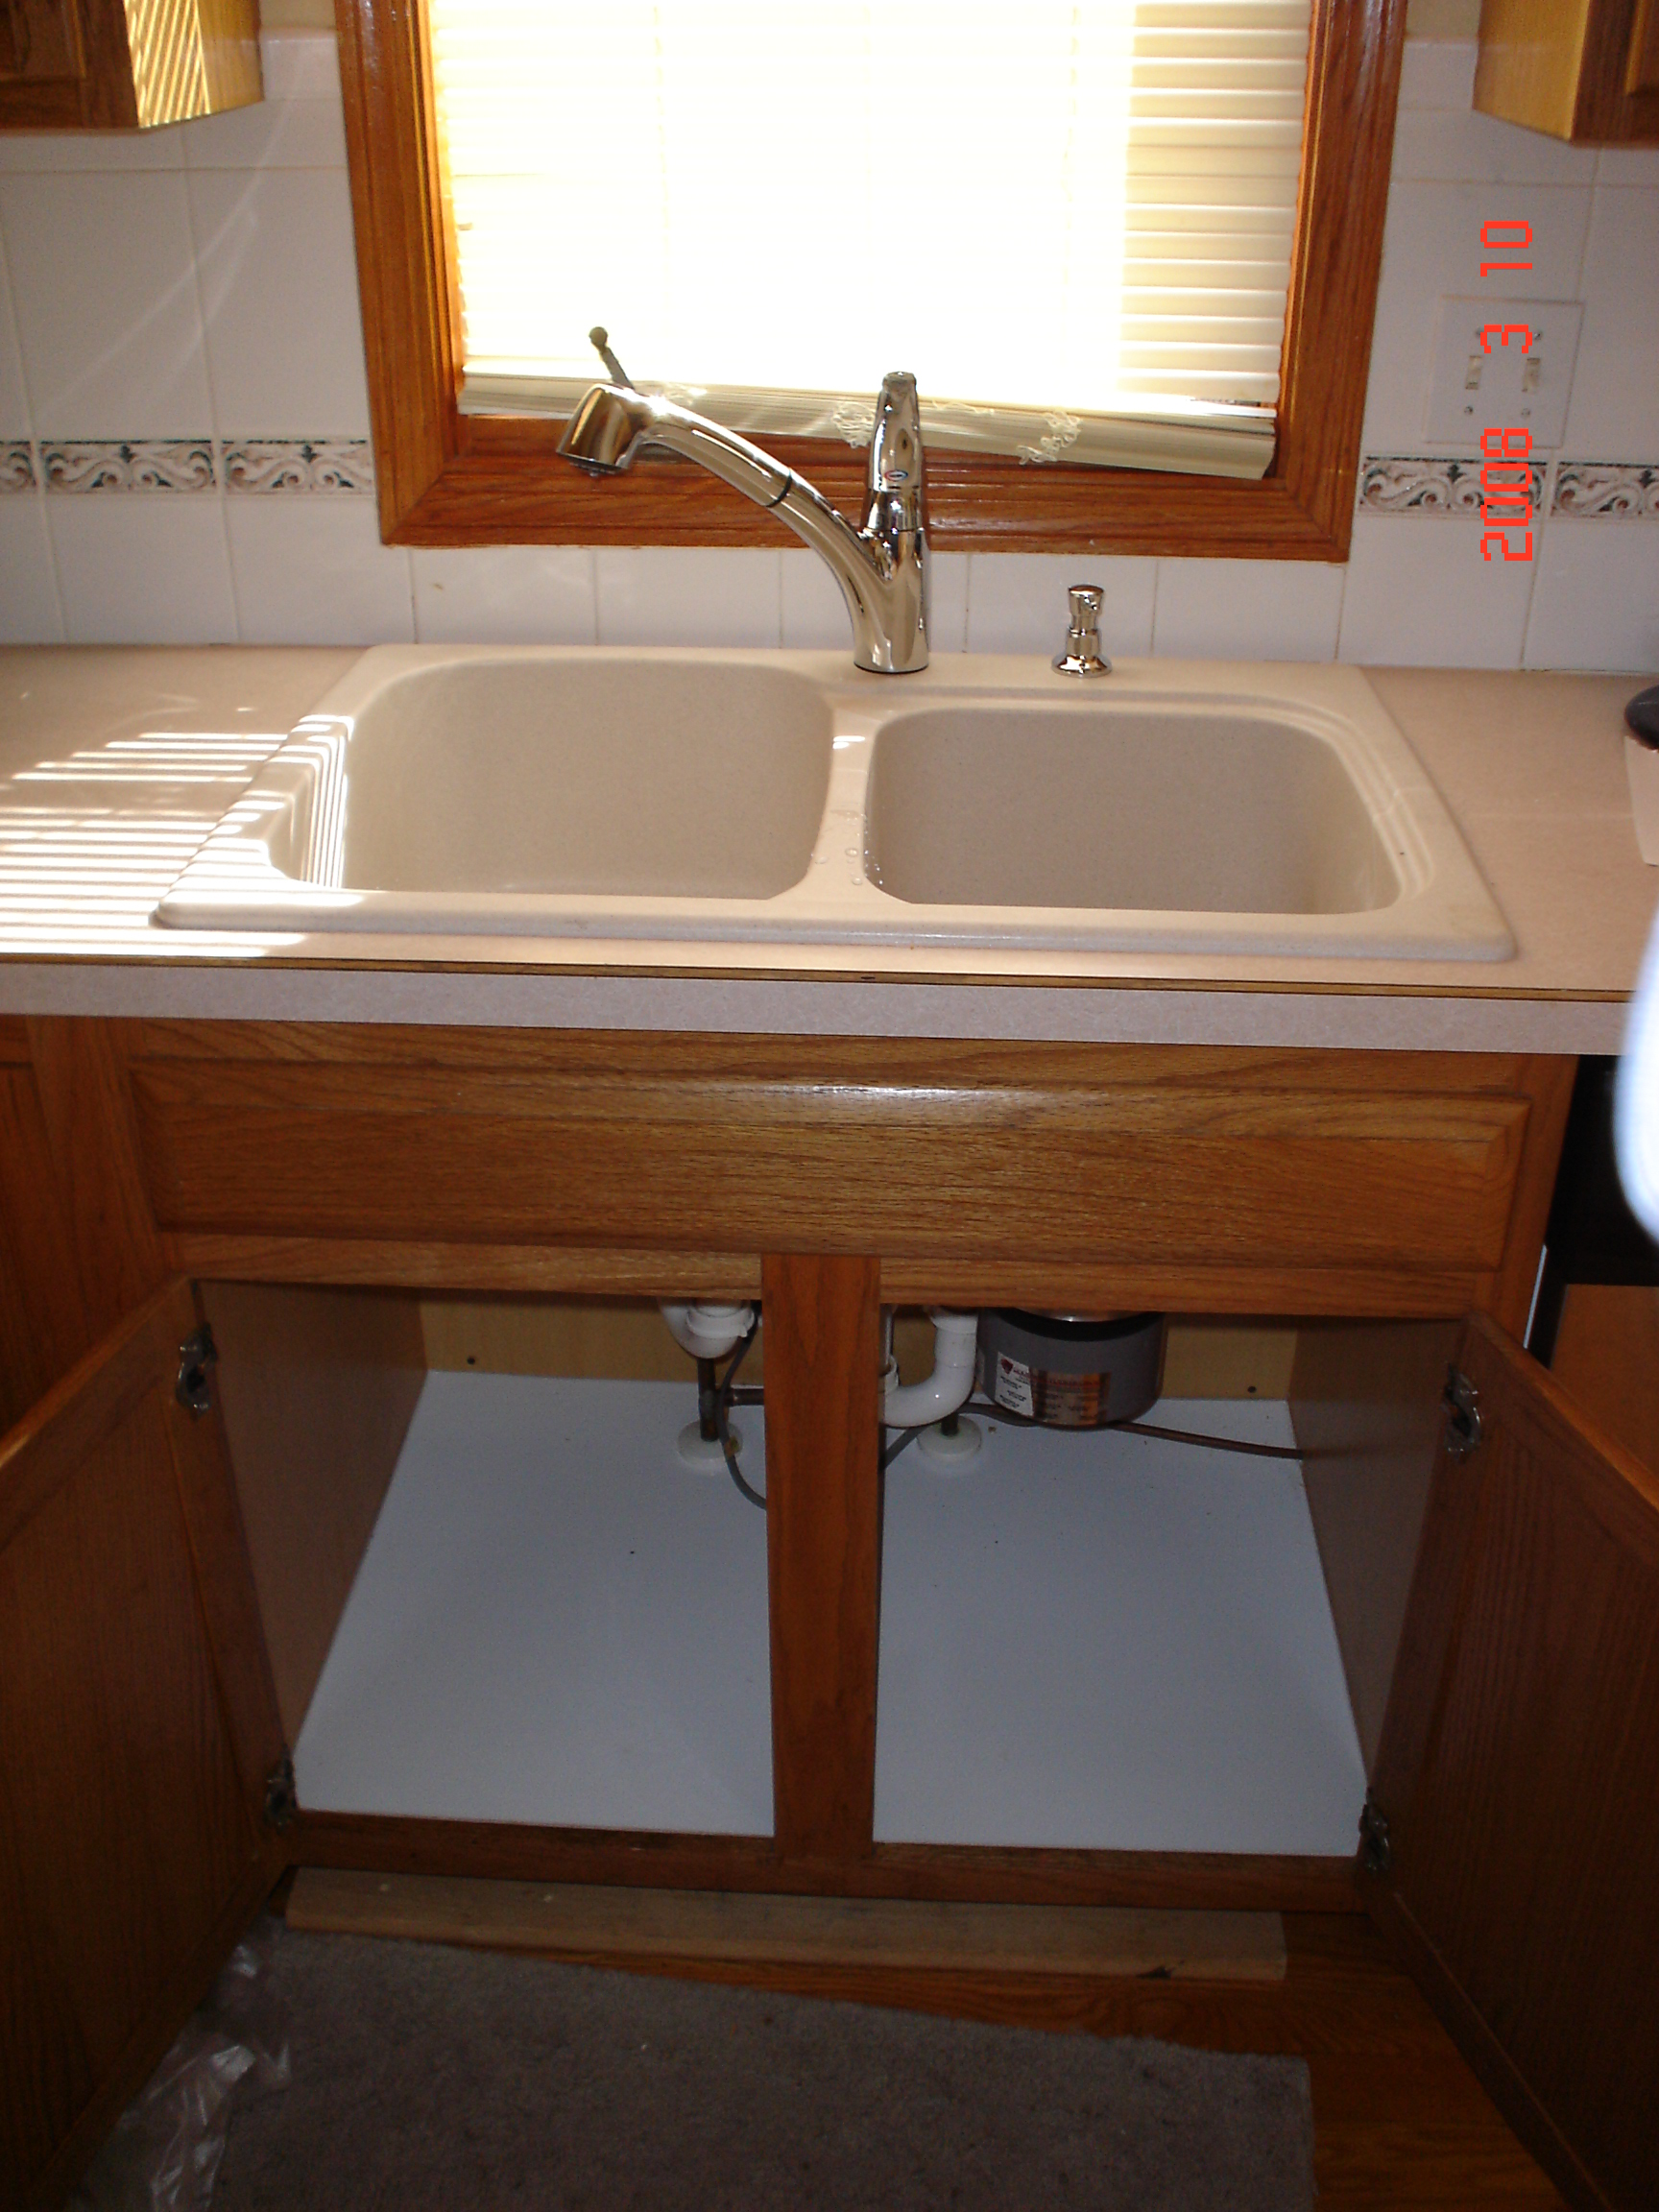 Sink, Faucet, Cabinet Floor Replaced